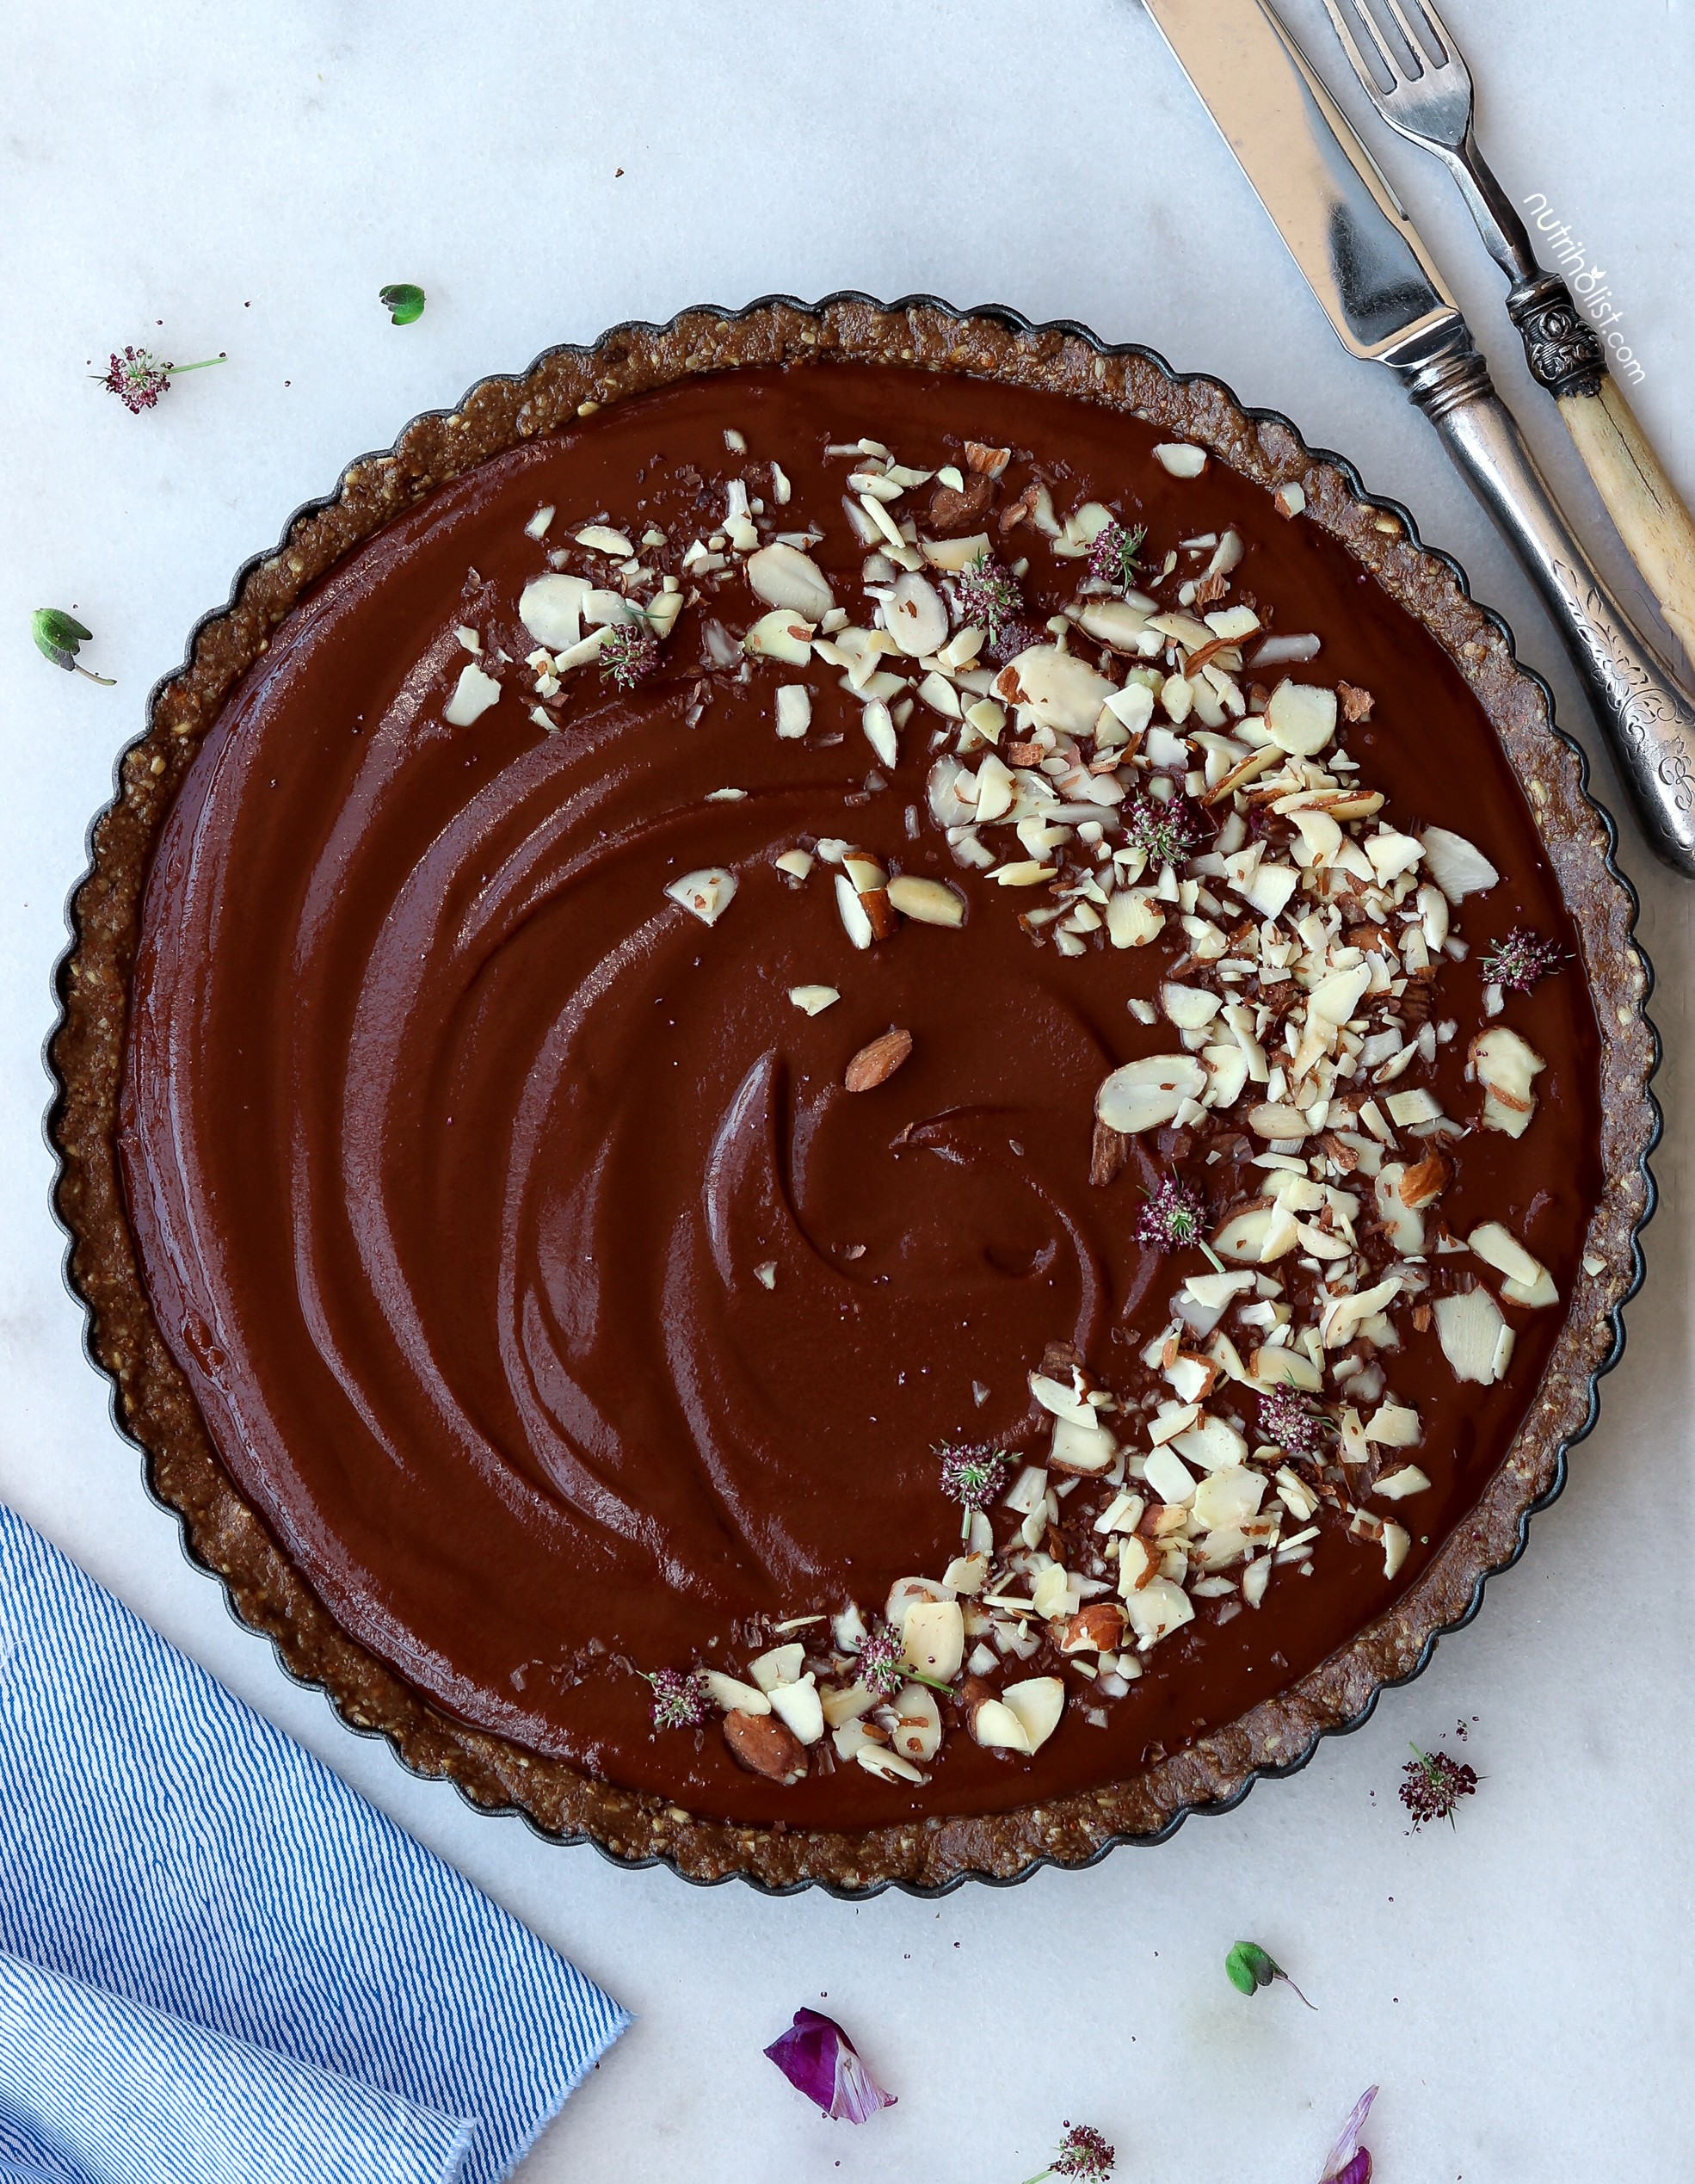 Sweet Potato Chocolate Silk Tart - This vegan chocolate tart is simply divine. Made with sweet potatoes and chocolate does it get any better. Oh and this delicious vegan chocoalte dessert is gluten-free.Recipe + Photo by Nutriholist